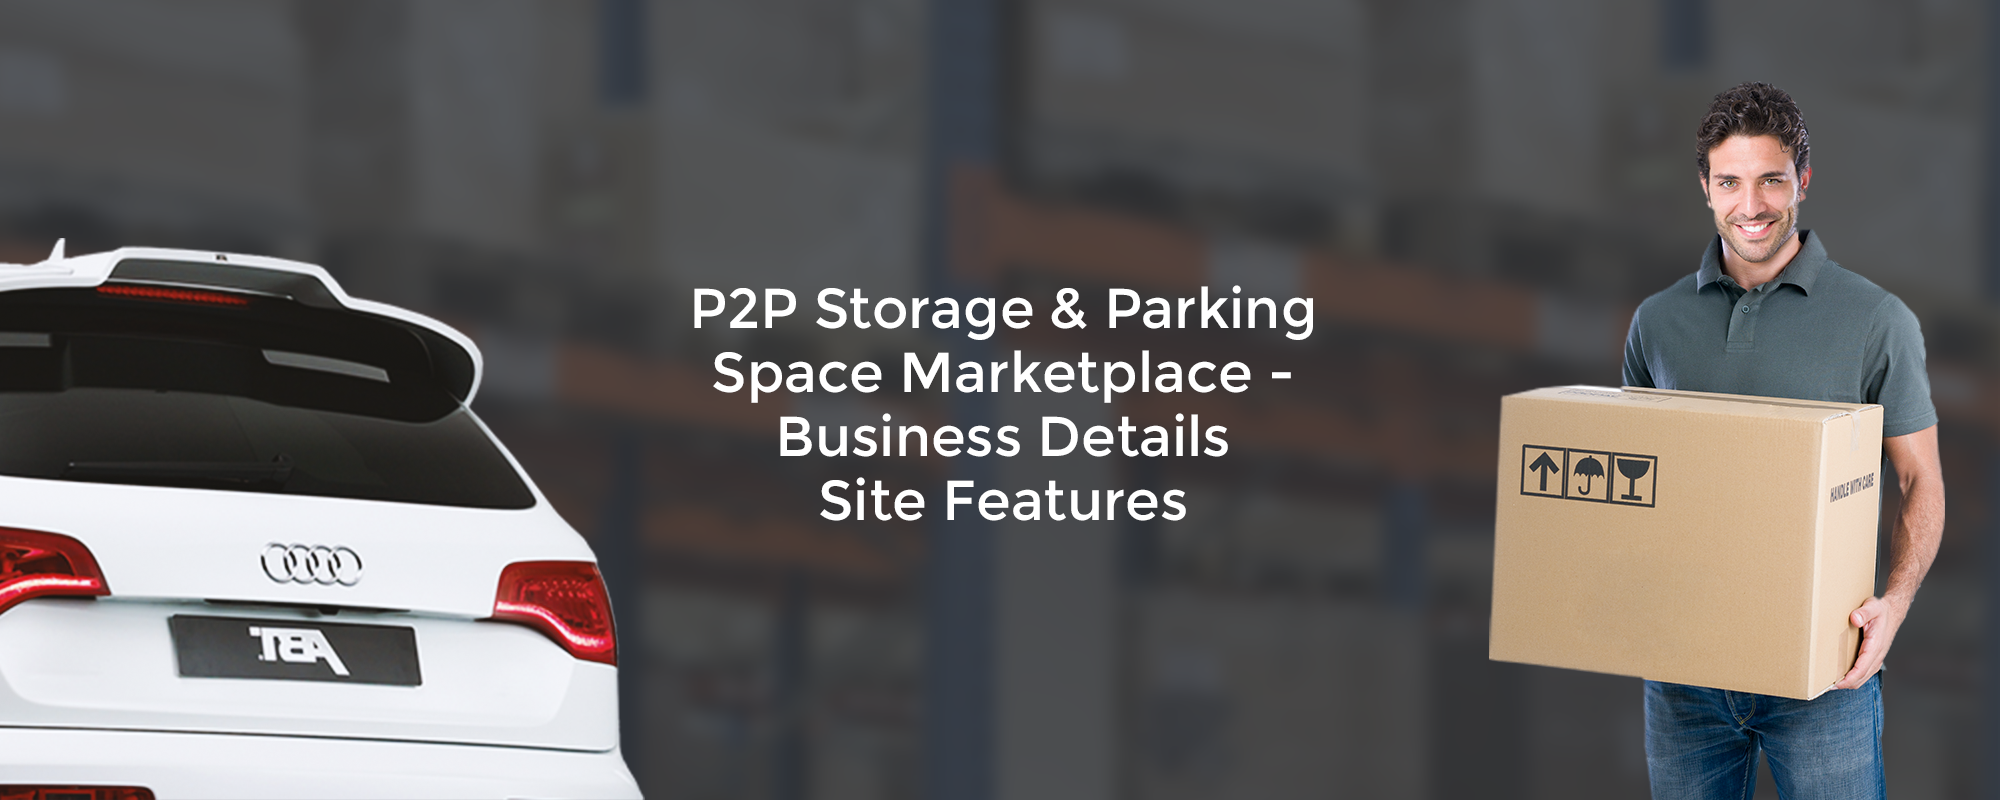 Top Features to Build Storage and Parking Space Marketplace